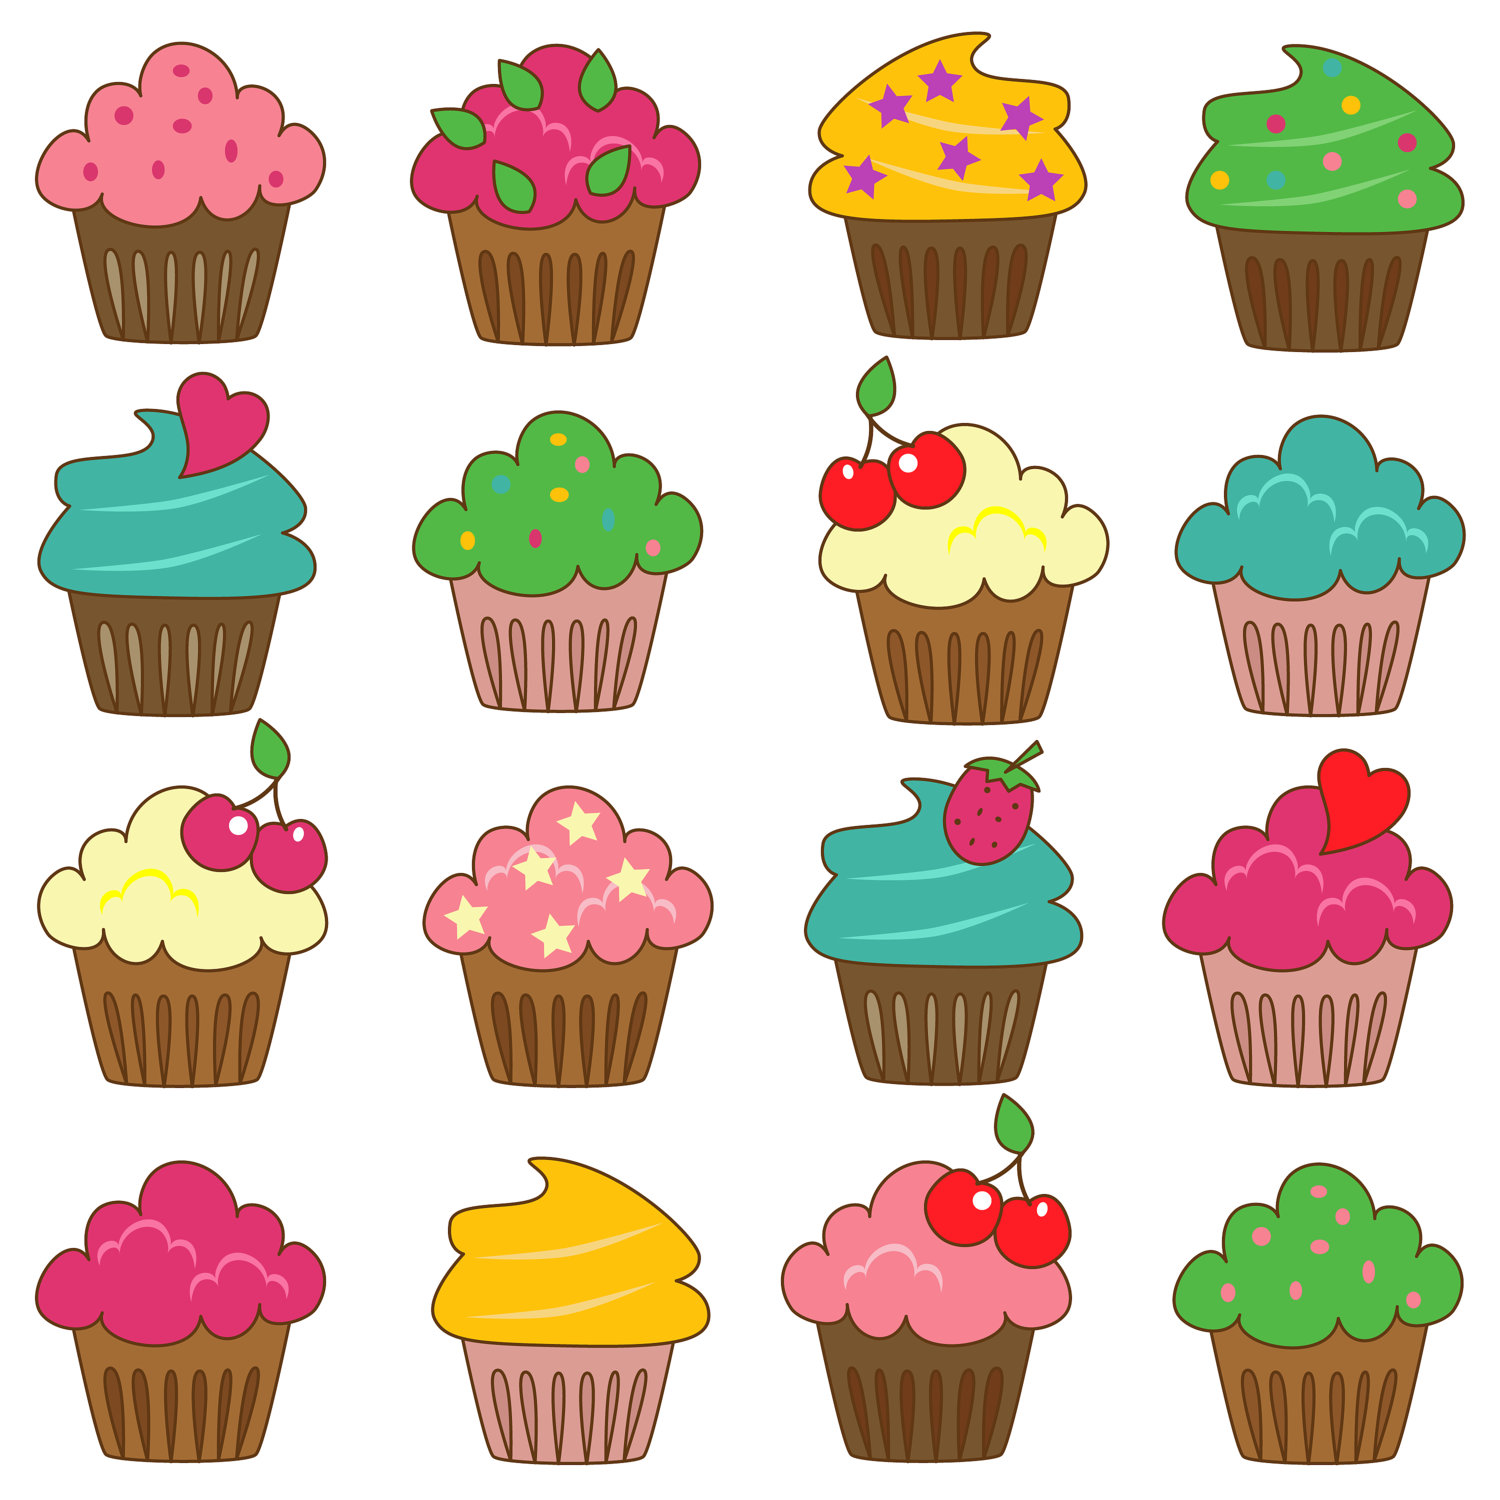 Free Printable Images Of Cupcakes : Decorated Cupcakes Clipart Image Cake - ClipArt Best ...